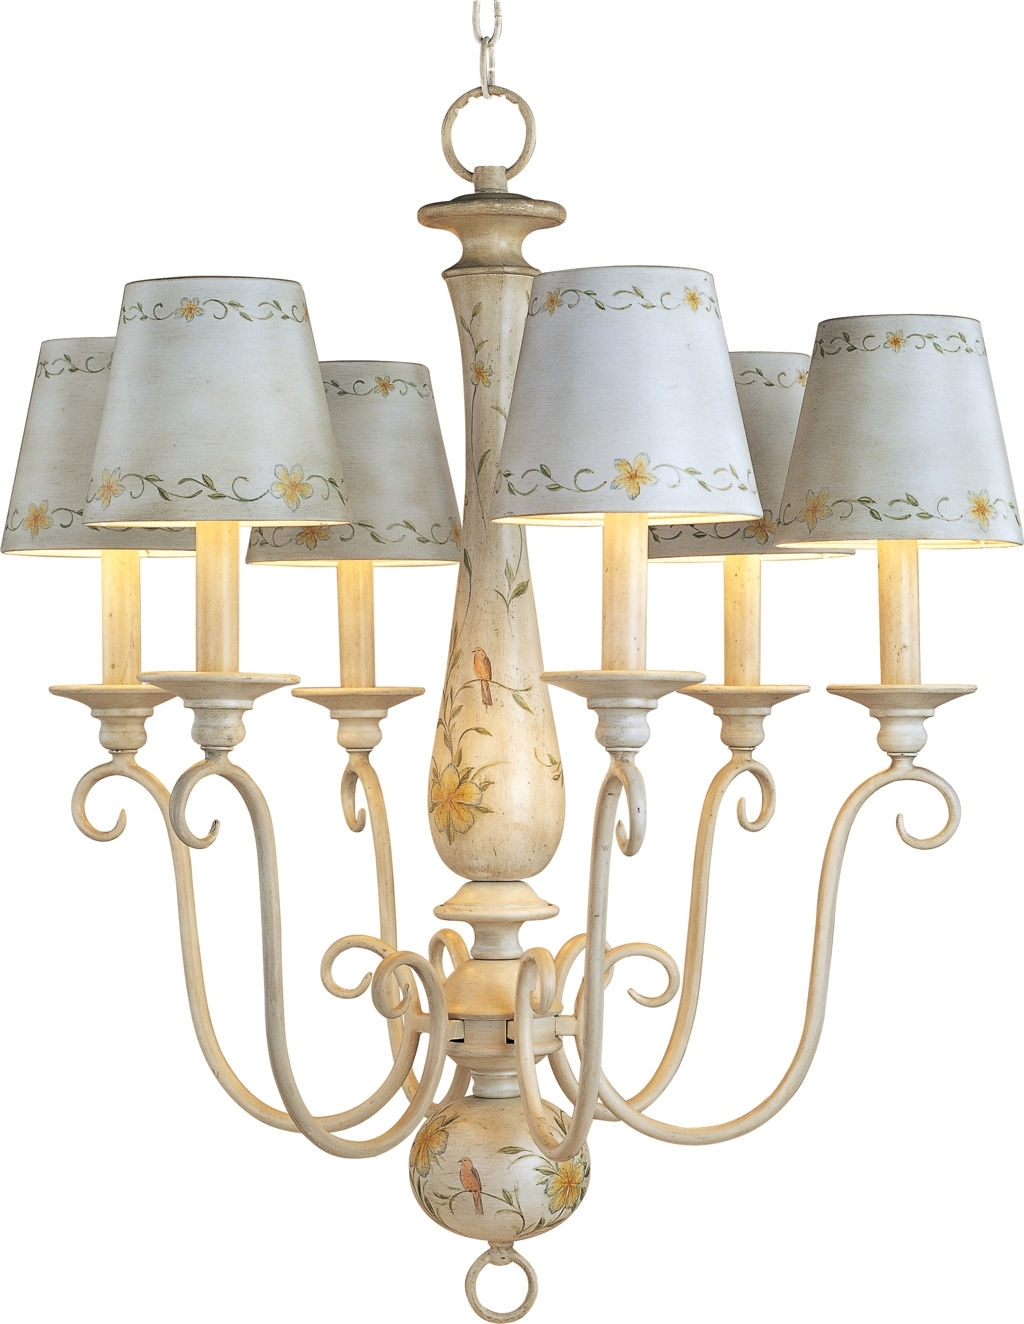 2018 Chandelier Light Shades Regarding Chandelier Lamp Shades Plus Sconce Light Shades Plus Large Grey (View 12 of 15)